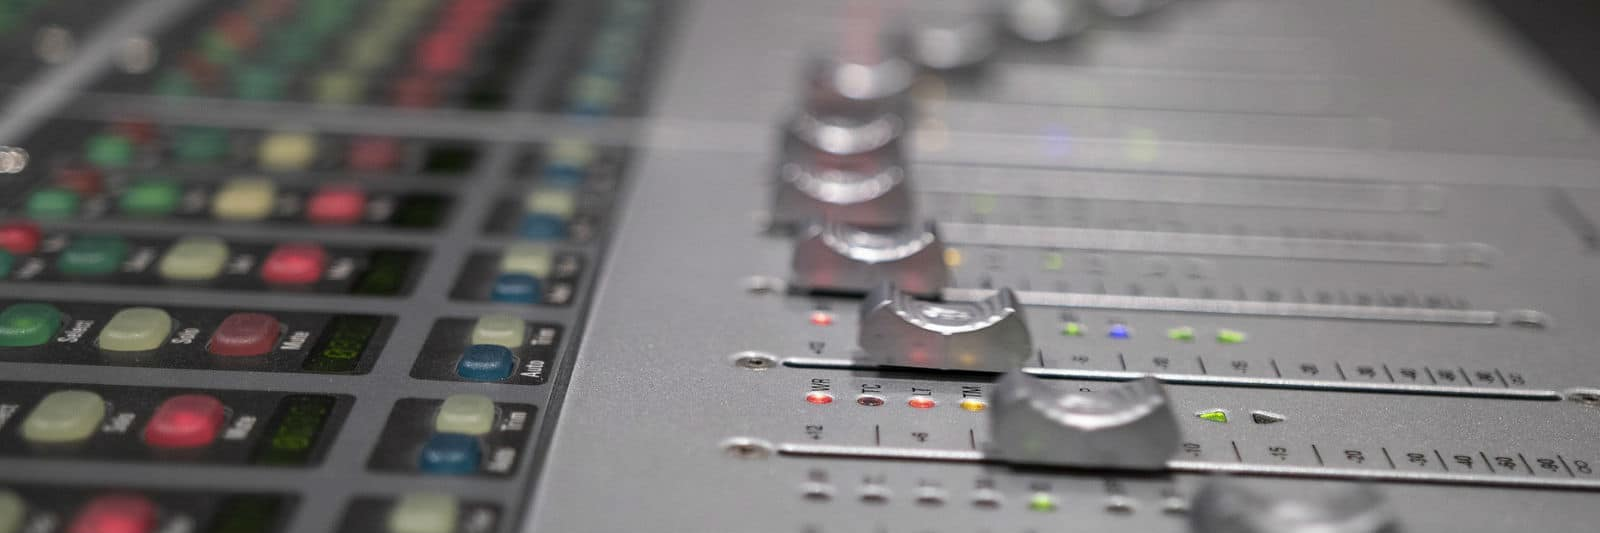 Digital Audio: Complete Beginner's Guide to Successful